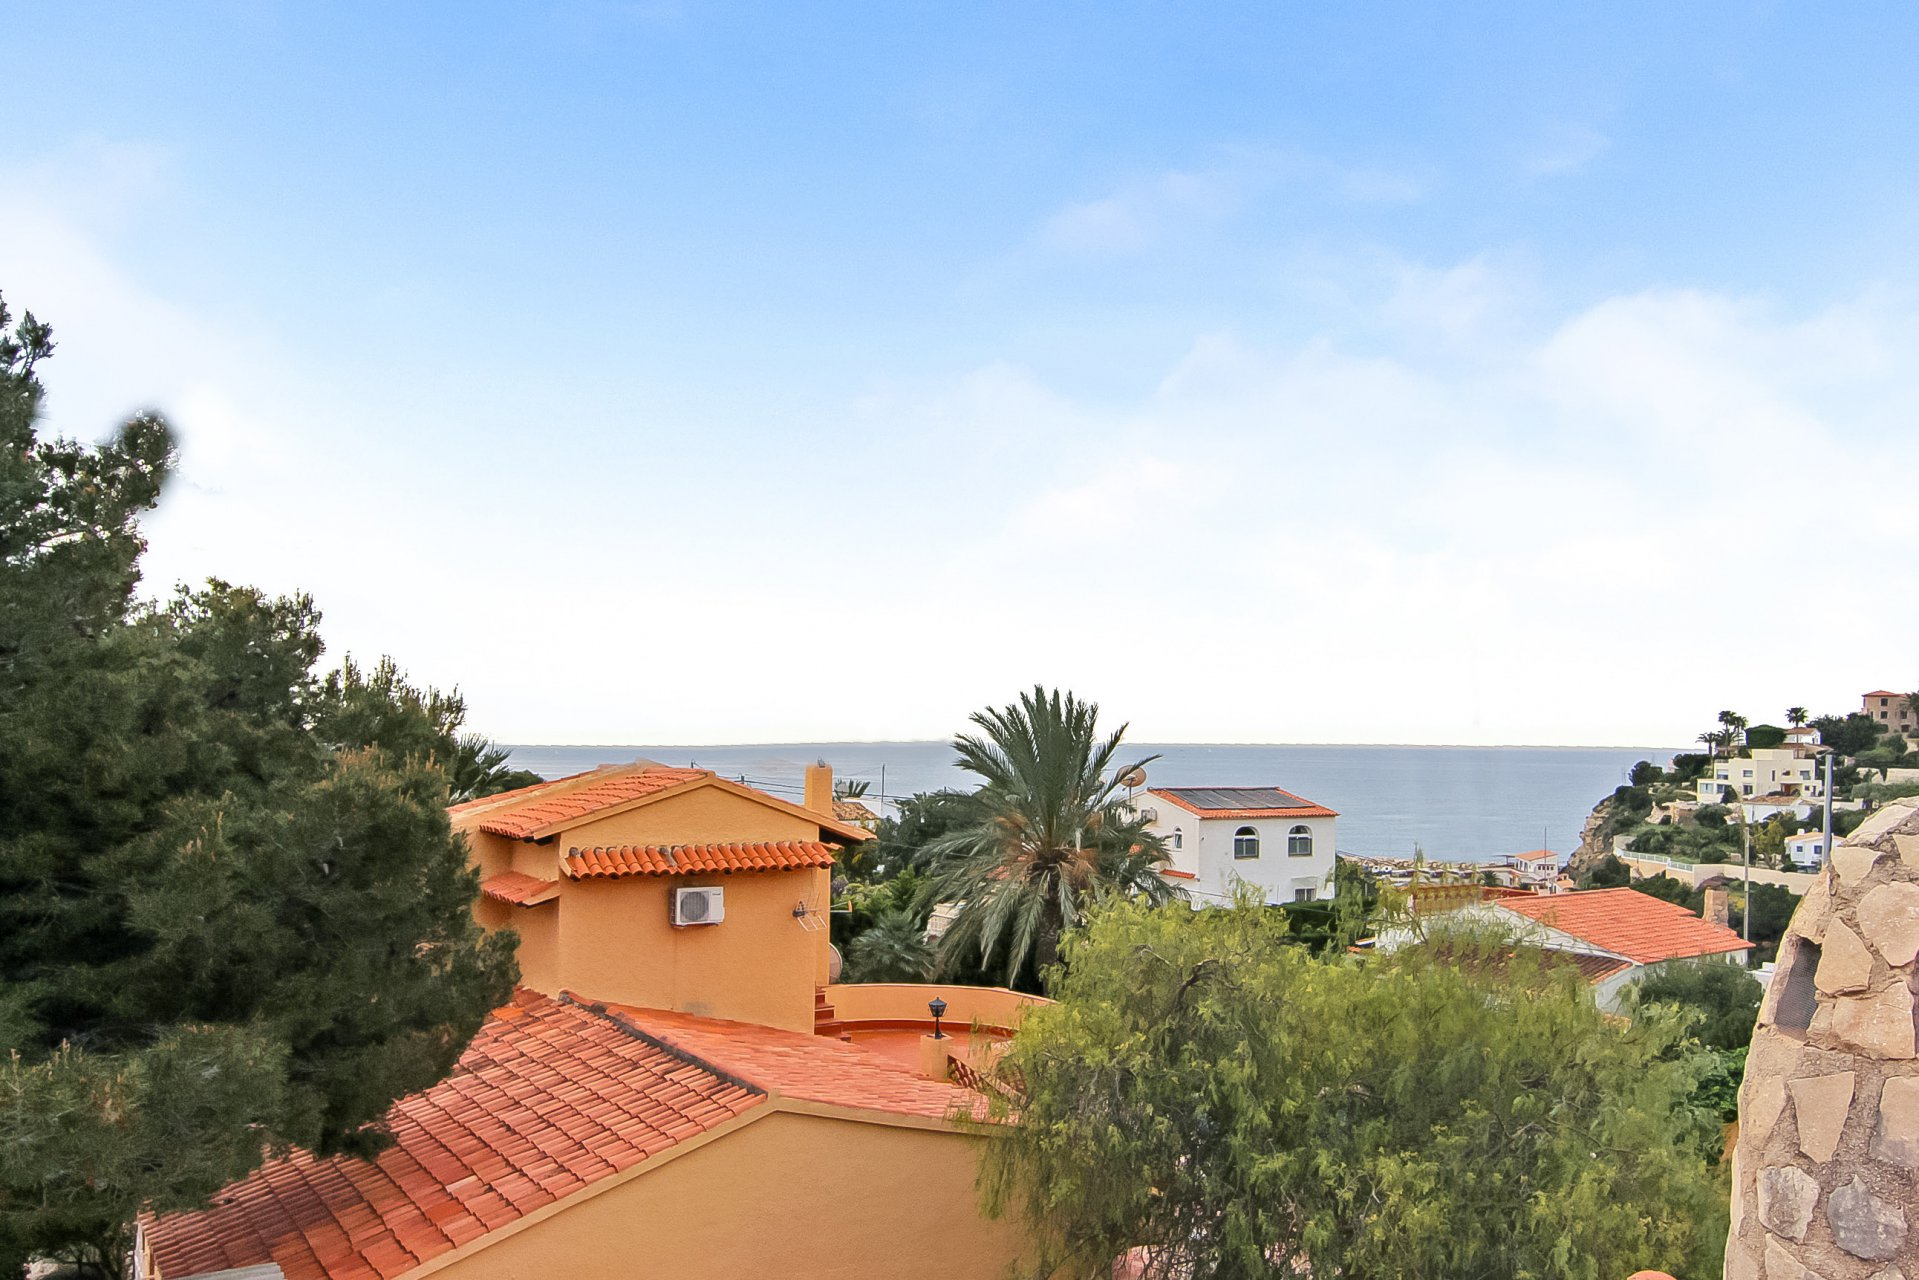 3-bedroom villa with seaviews in Calpe